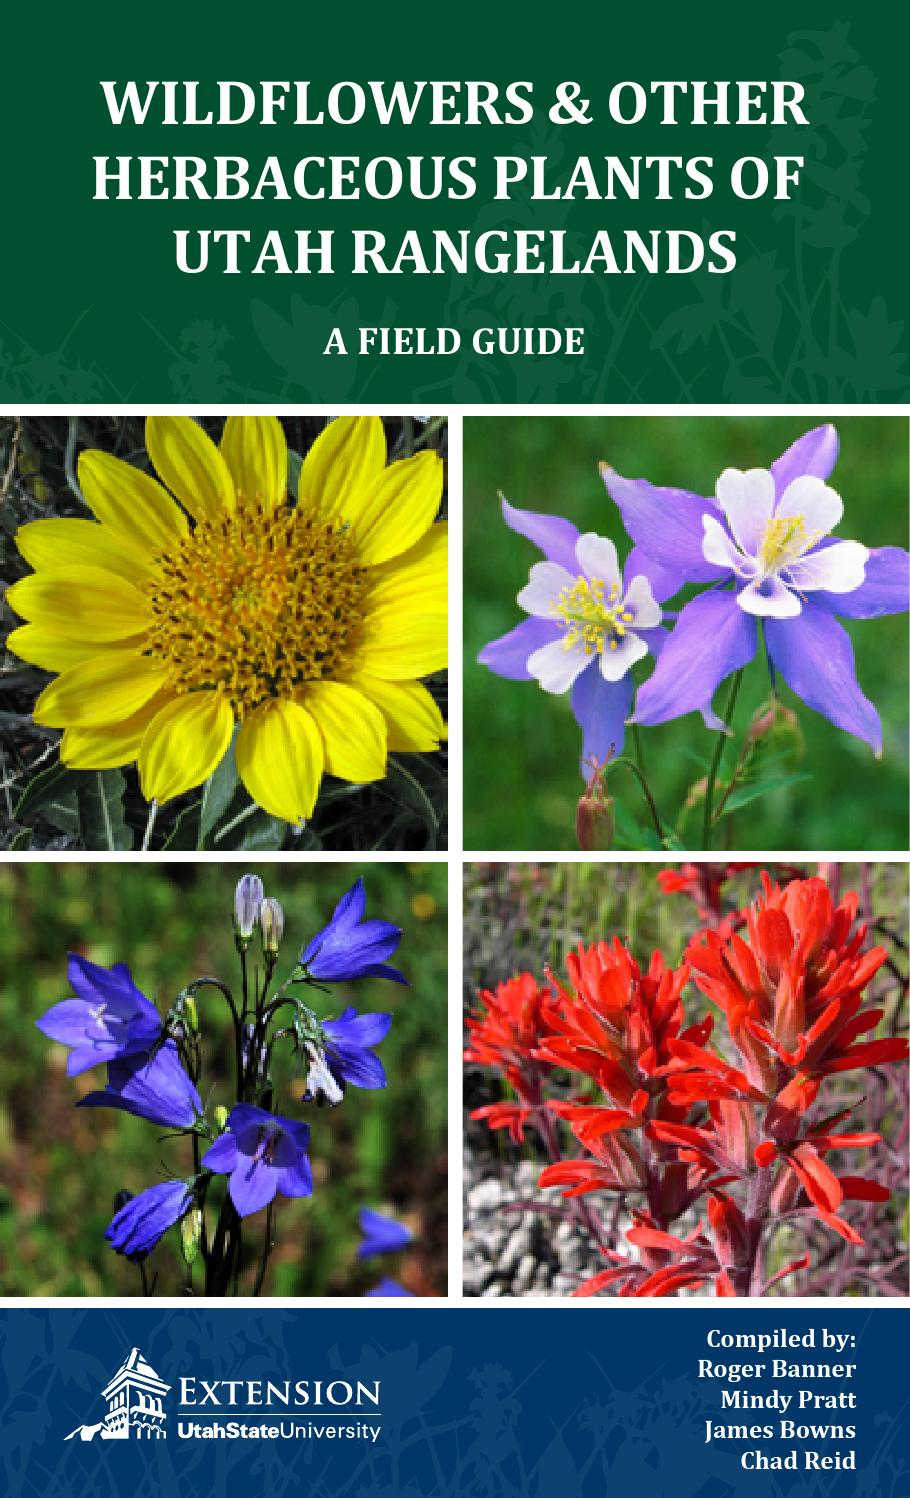 Wildflowers and Other Herbaceous Plants of Utah Rangelands